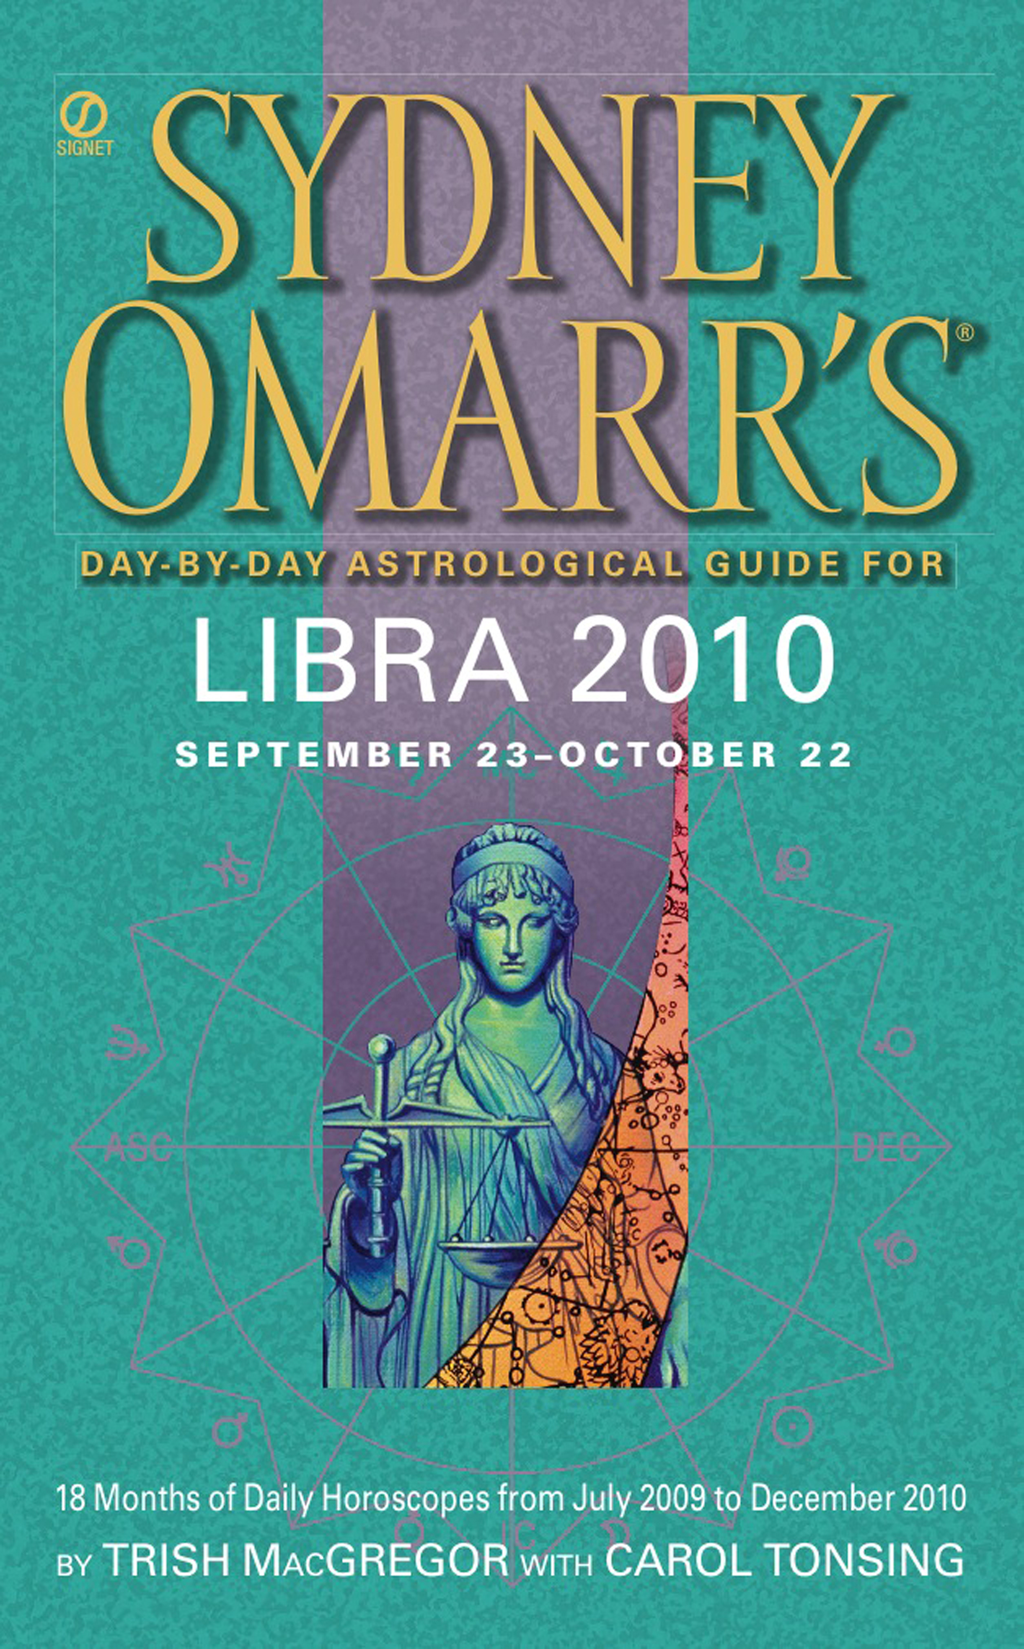 Sydney Omarr's Day-By-Day Astrological Guide for the Year 2010: Libra